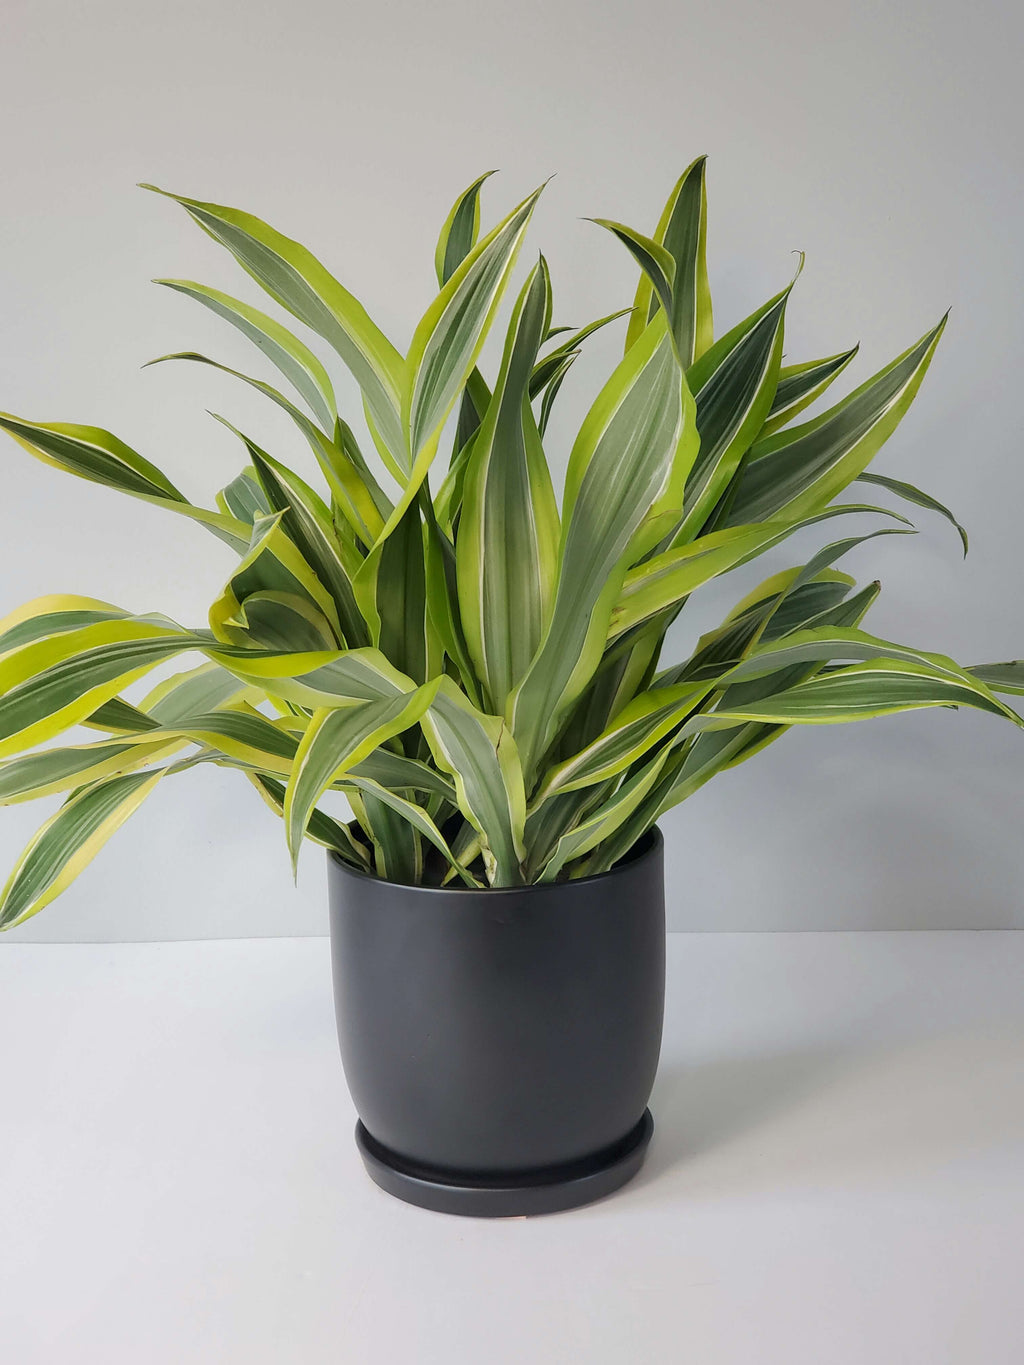 Dracaena Lemon Lime Houseplant Buy Online